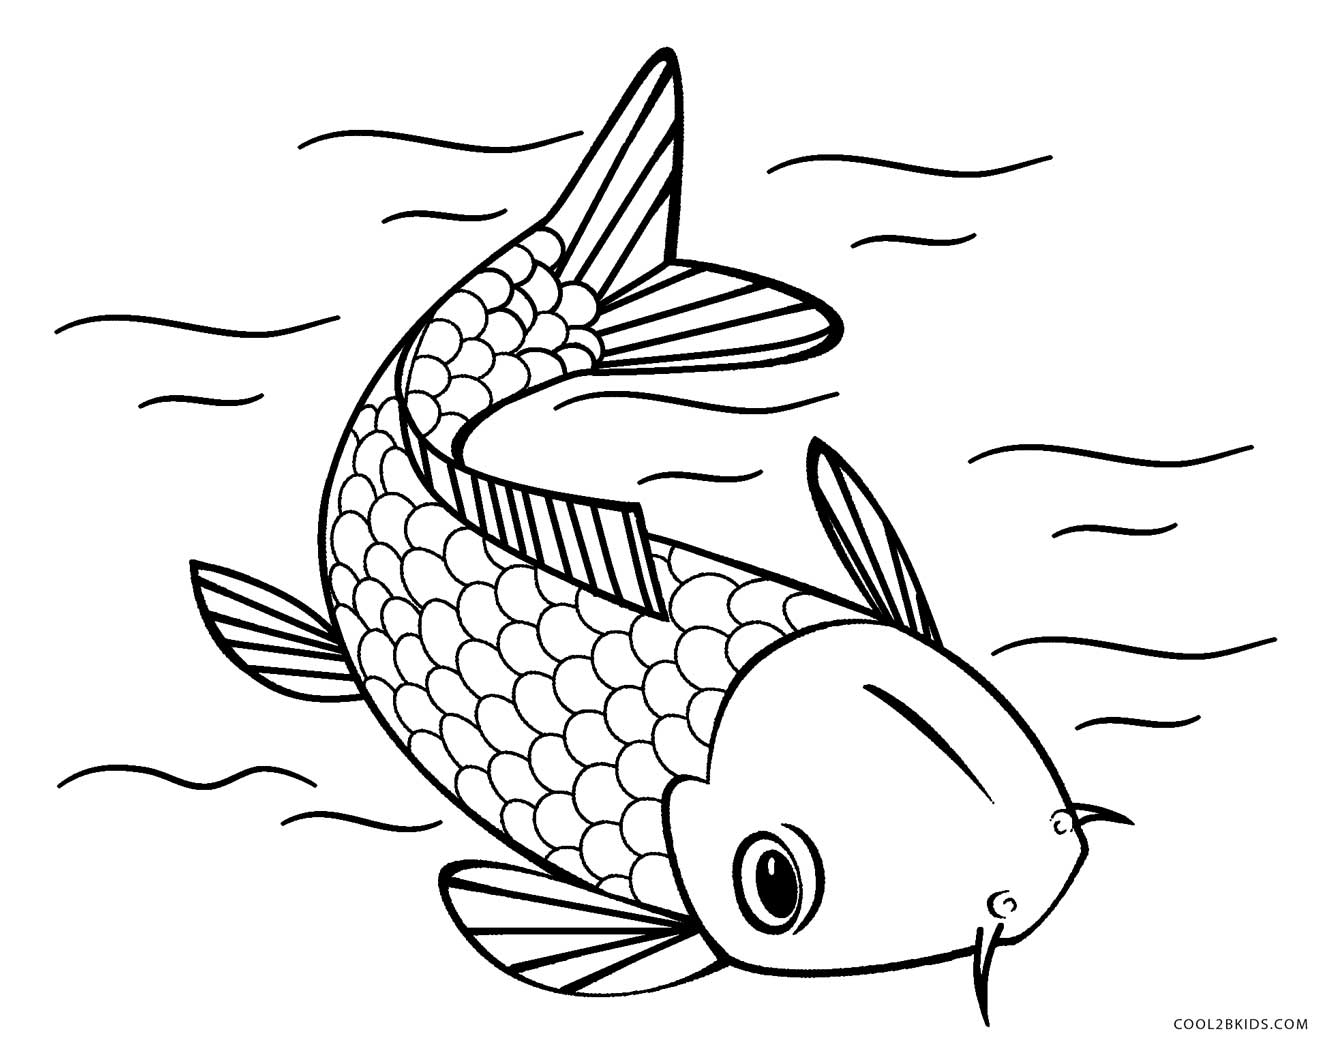 fish printable fish coloring pages for kids preschool and kindergarten fish printable